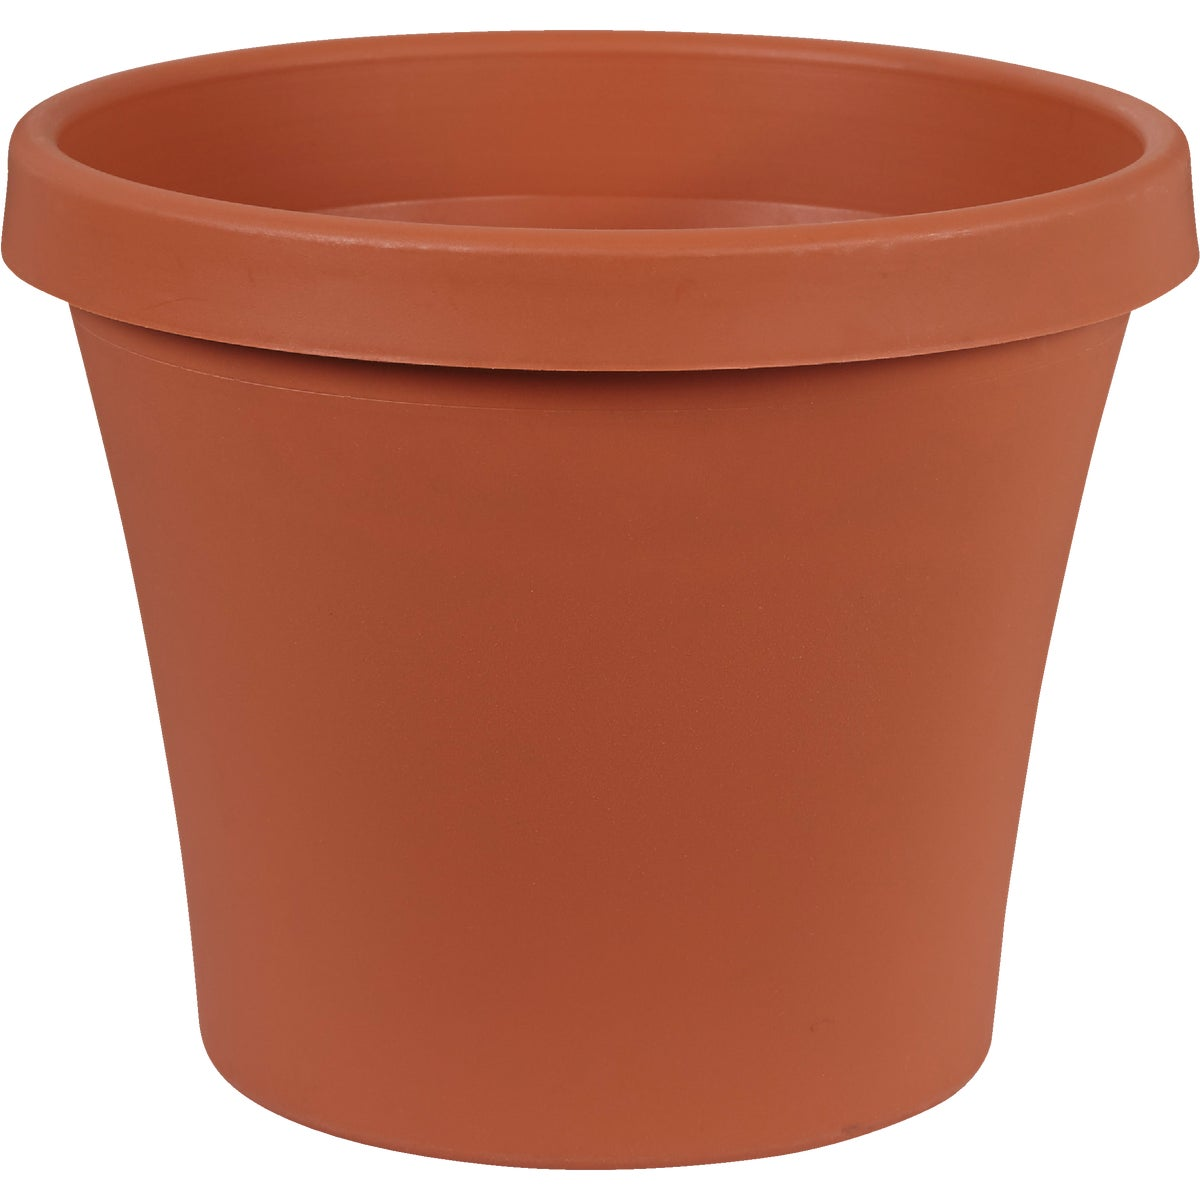 "14"" CLAY POLY POT - 50014C by Fiskars Brands Inc"